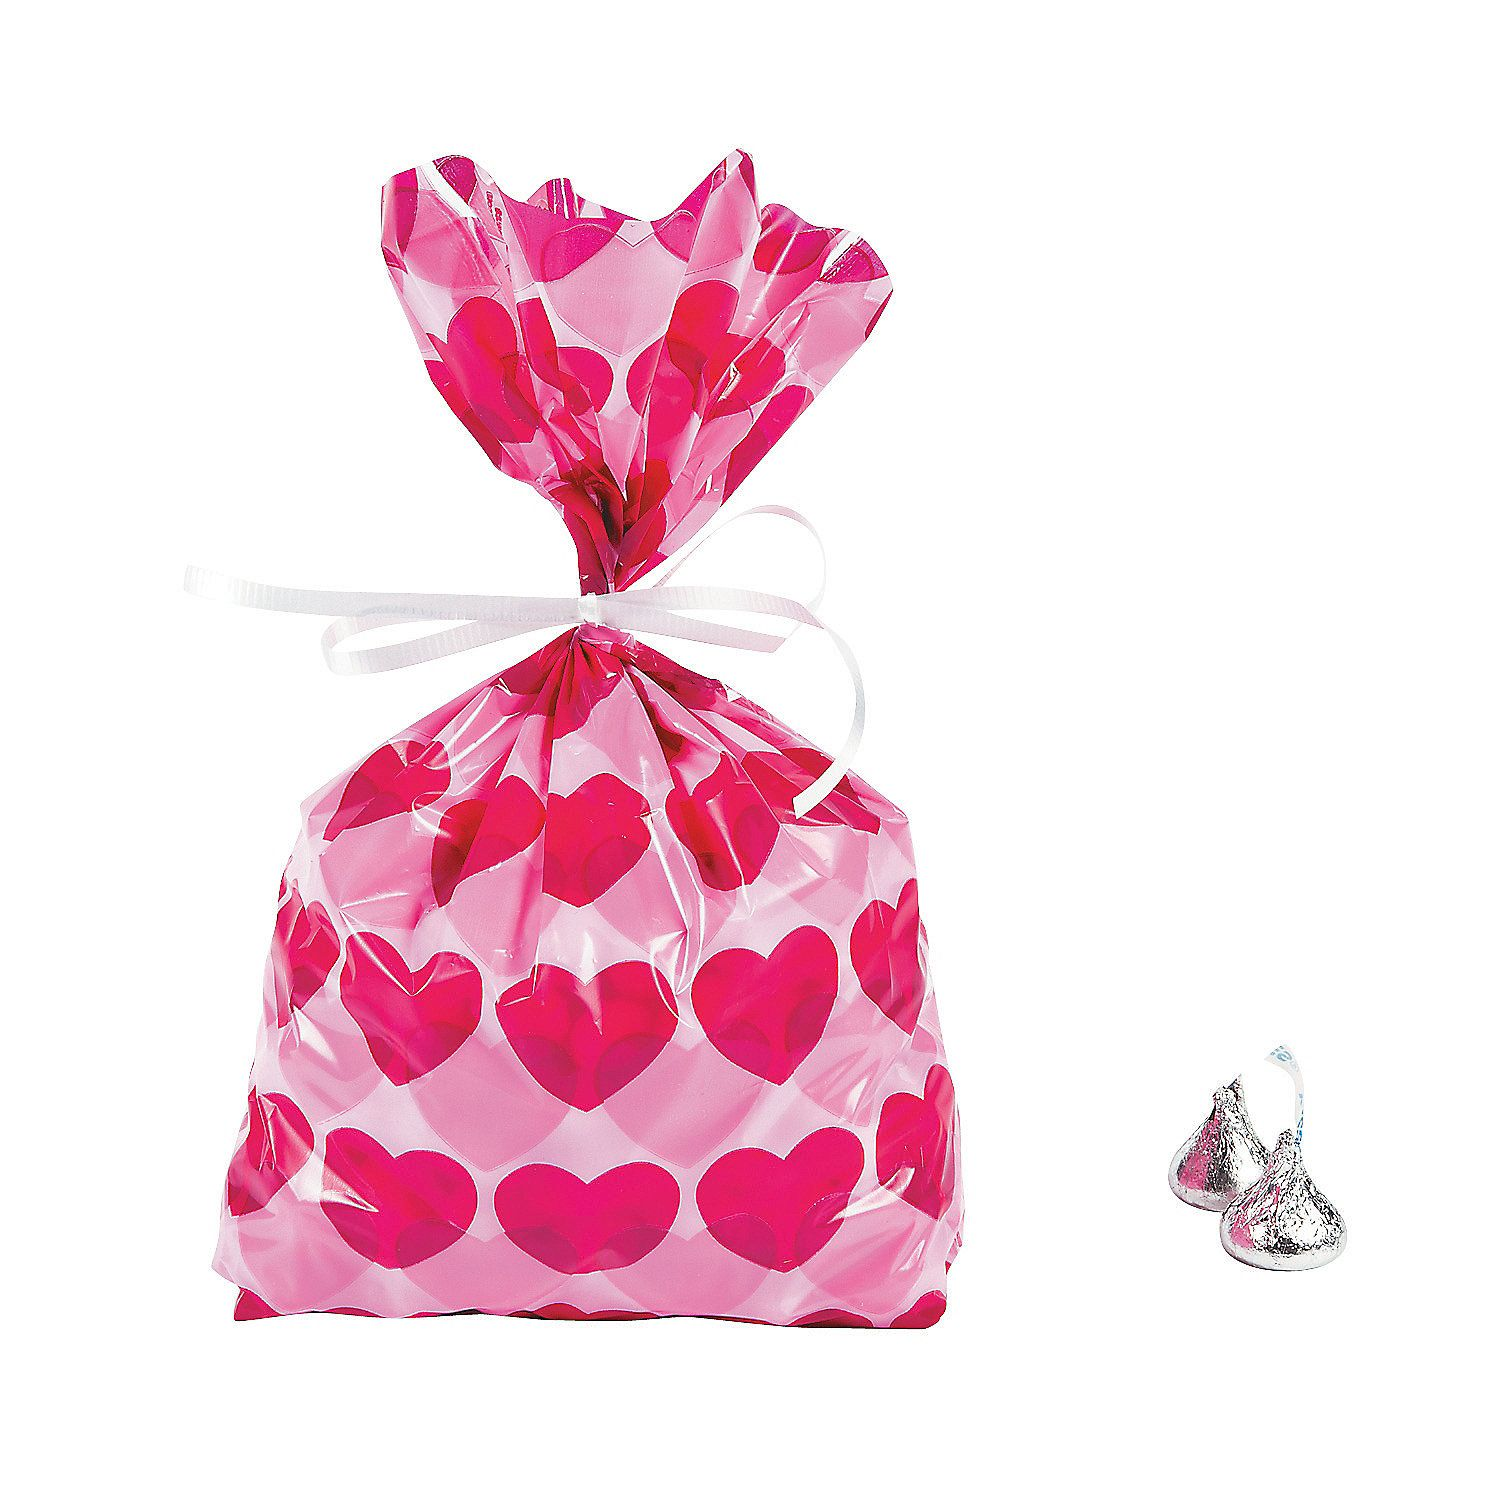 Valentine Heart Cellophane Bags | Cellophane bags, Valentine heart ...